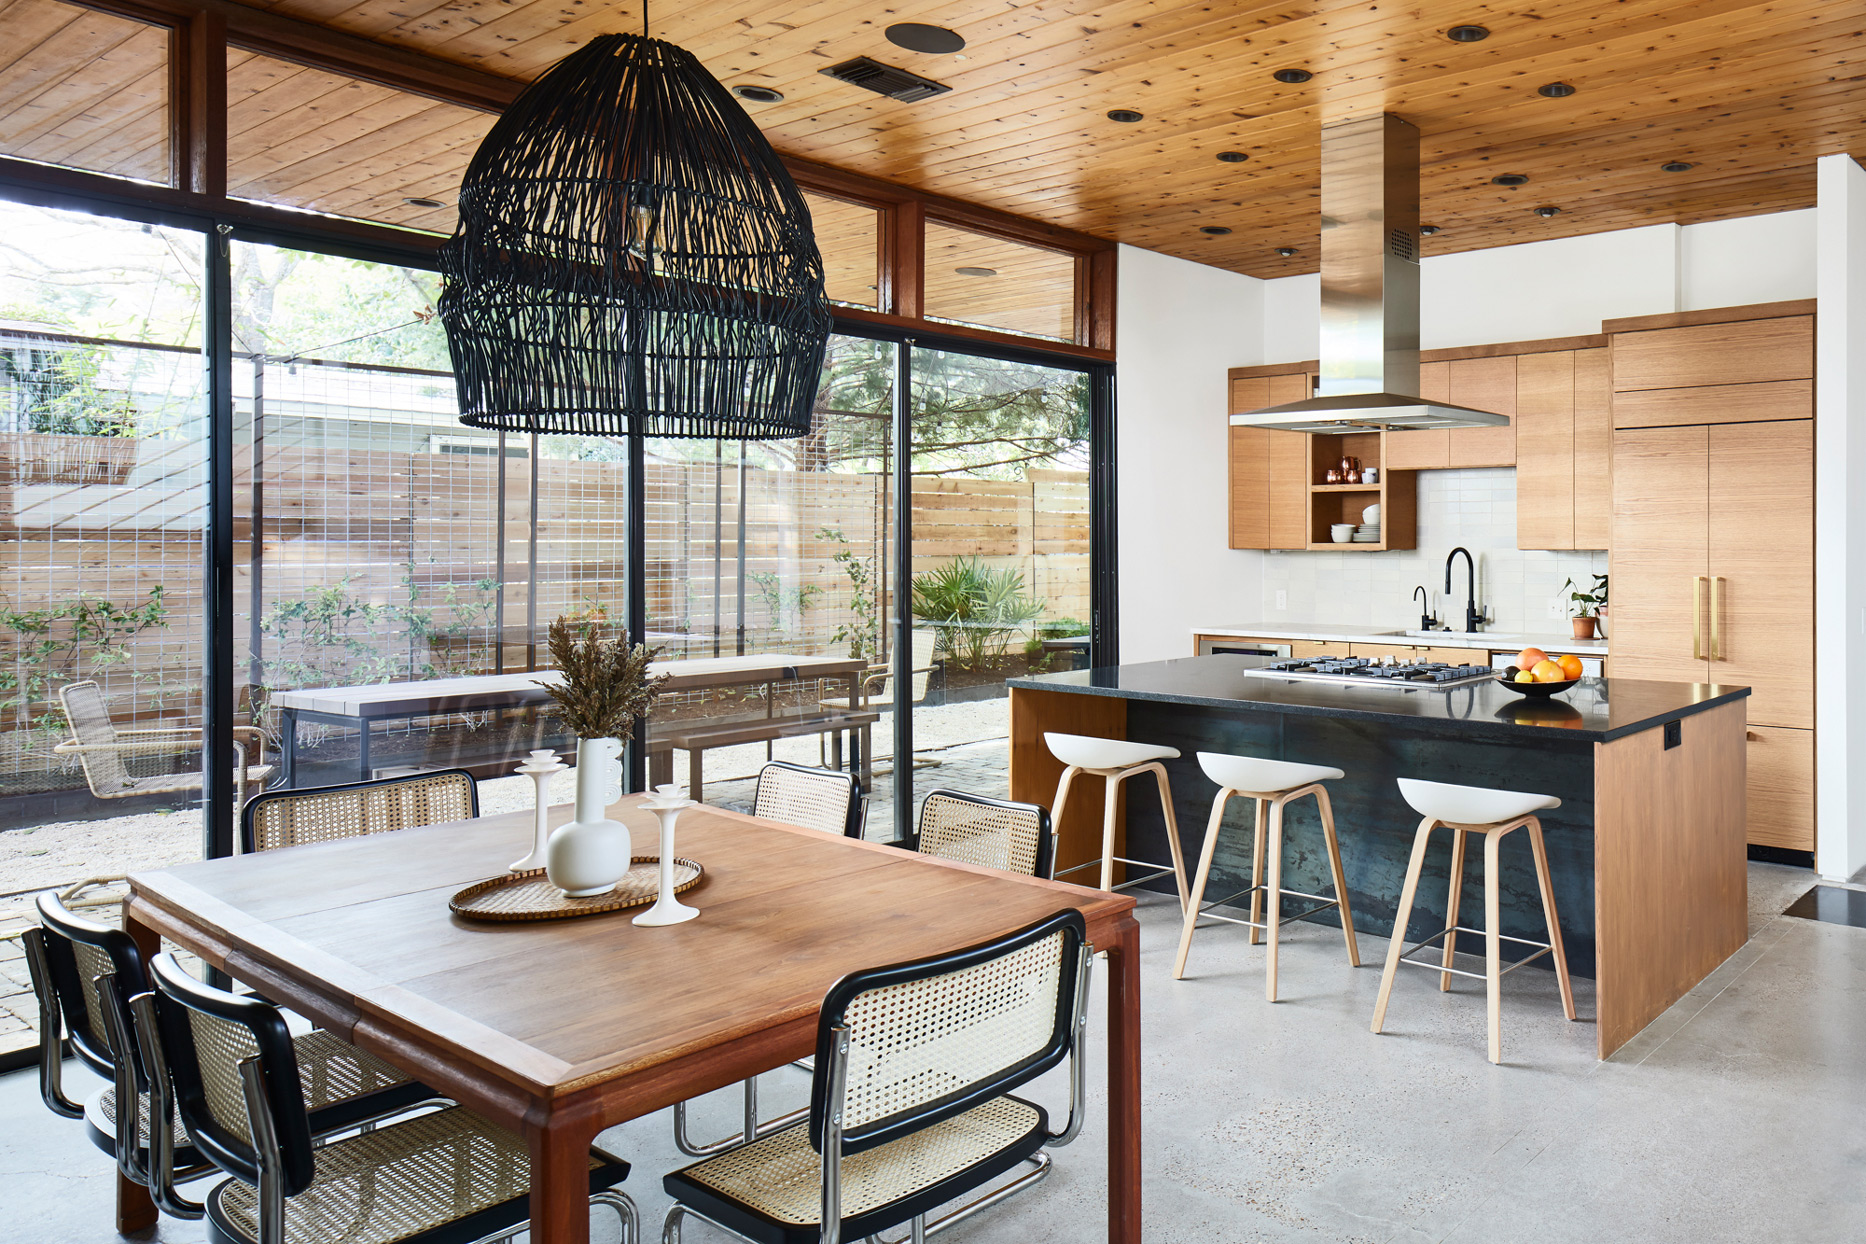 neutral-colored dining room and kitchen with wood accents